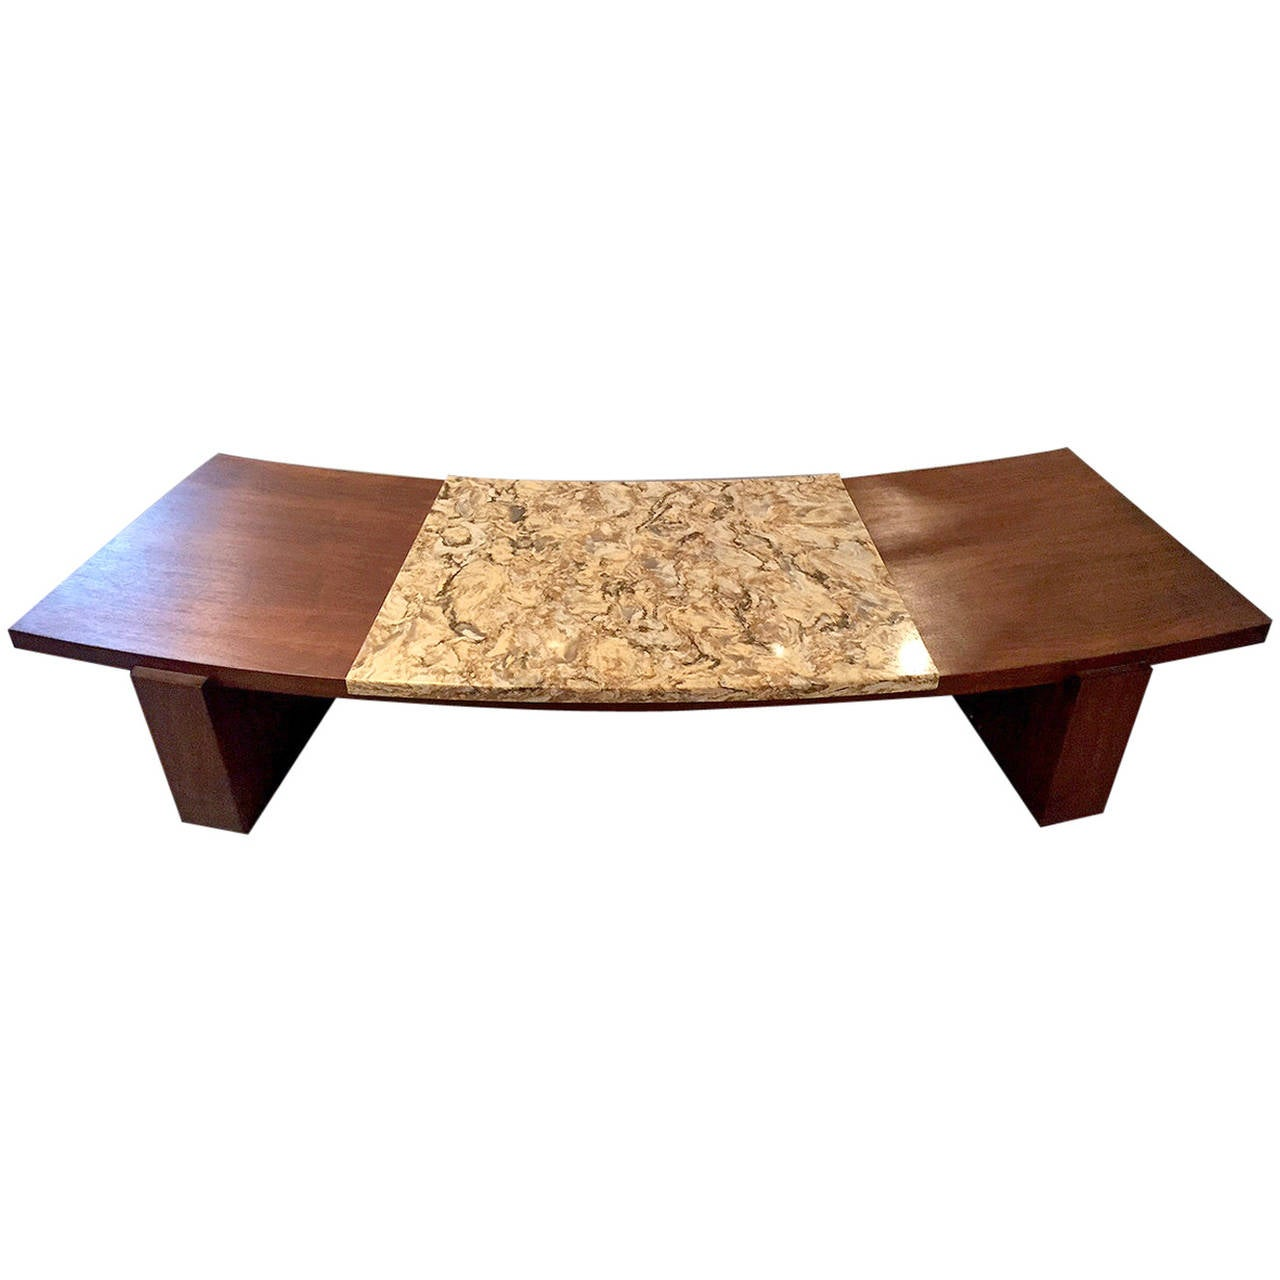 Early Walnut And Marble Curvy Coffee Table By Vladimir Kagan For - Walnut and marble coffee table